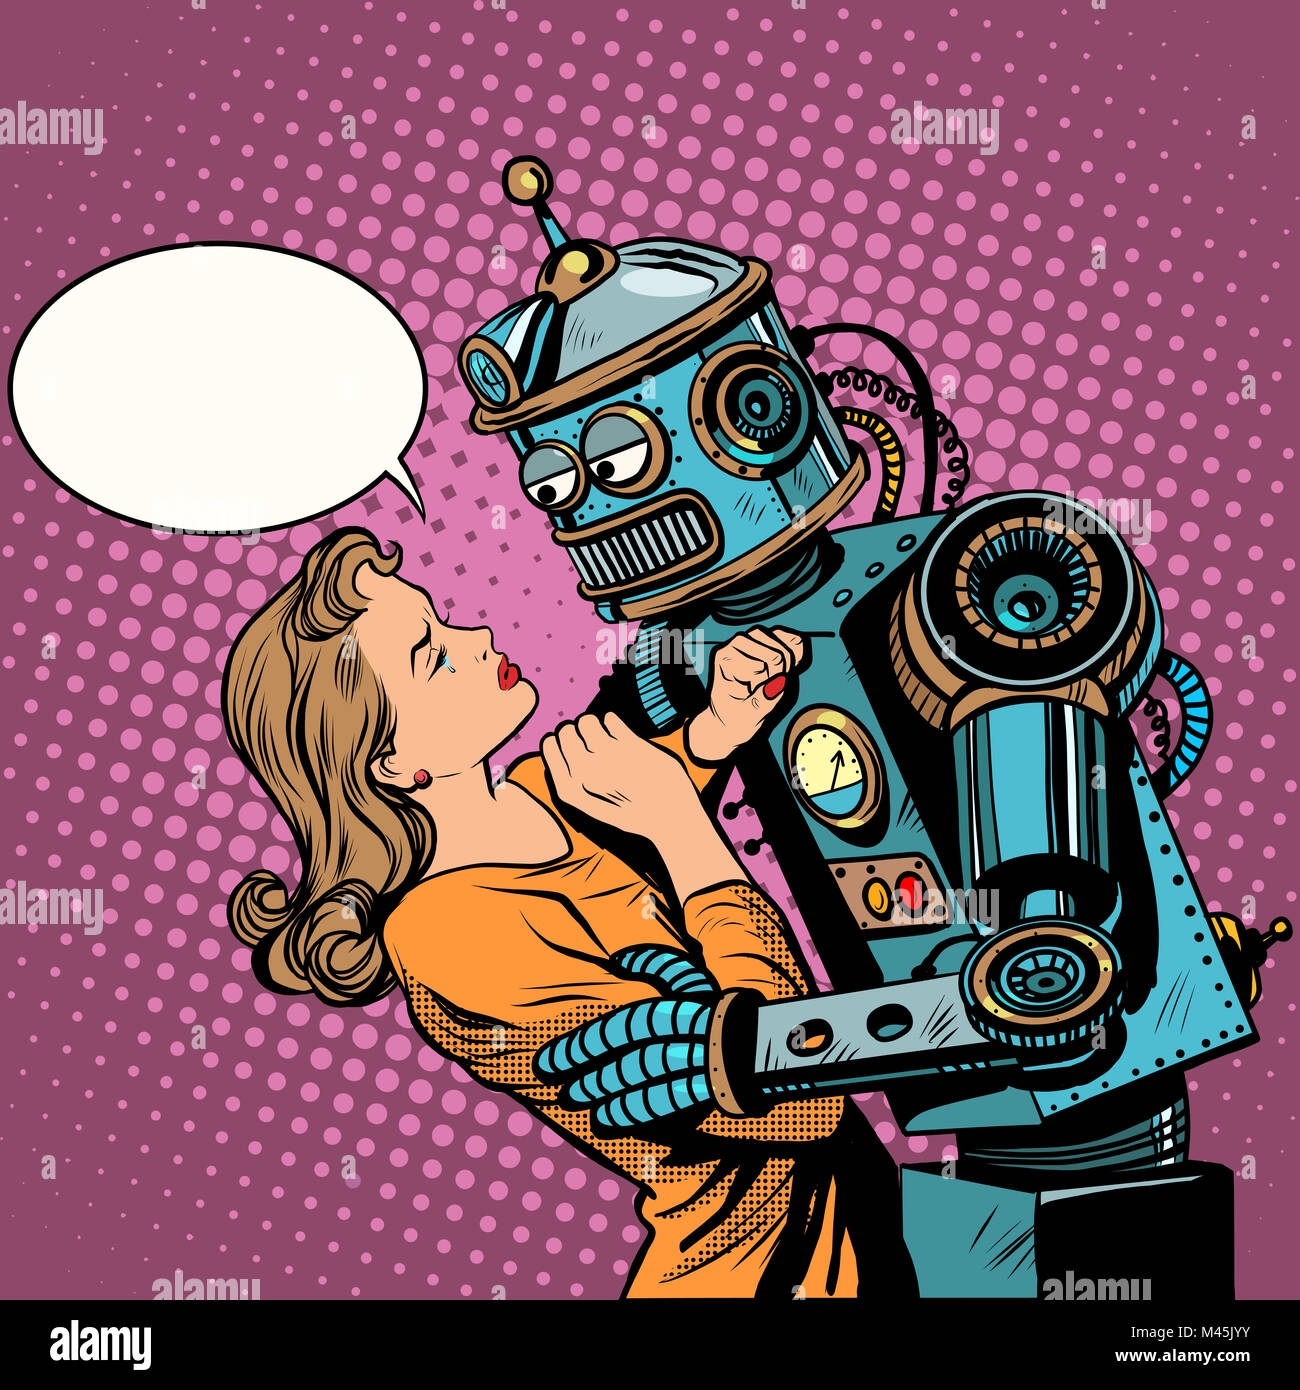 Robot woman love computer technology - Stock Image